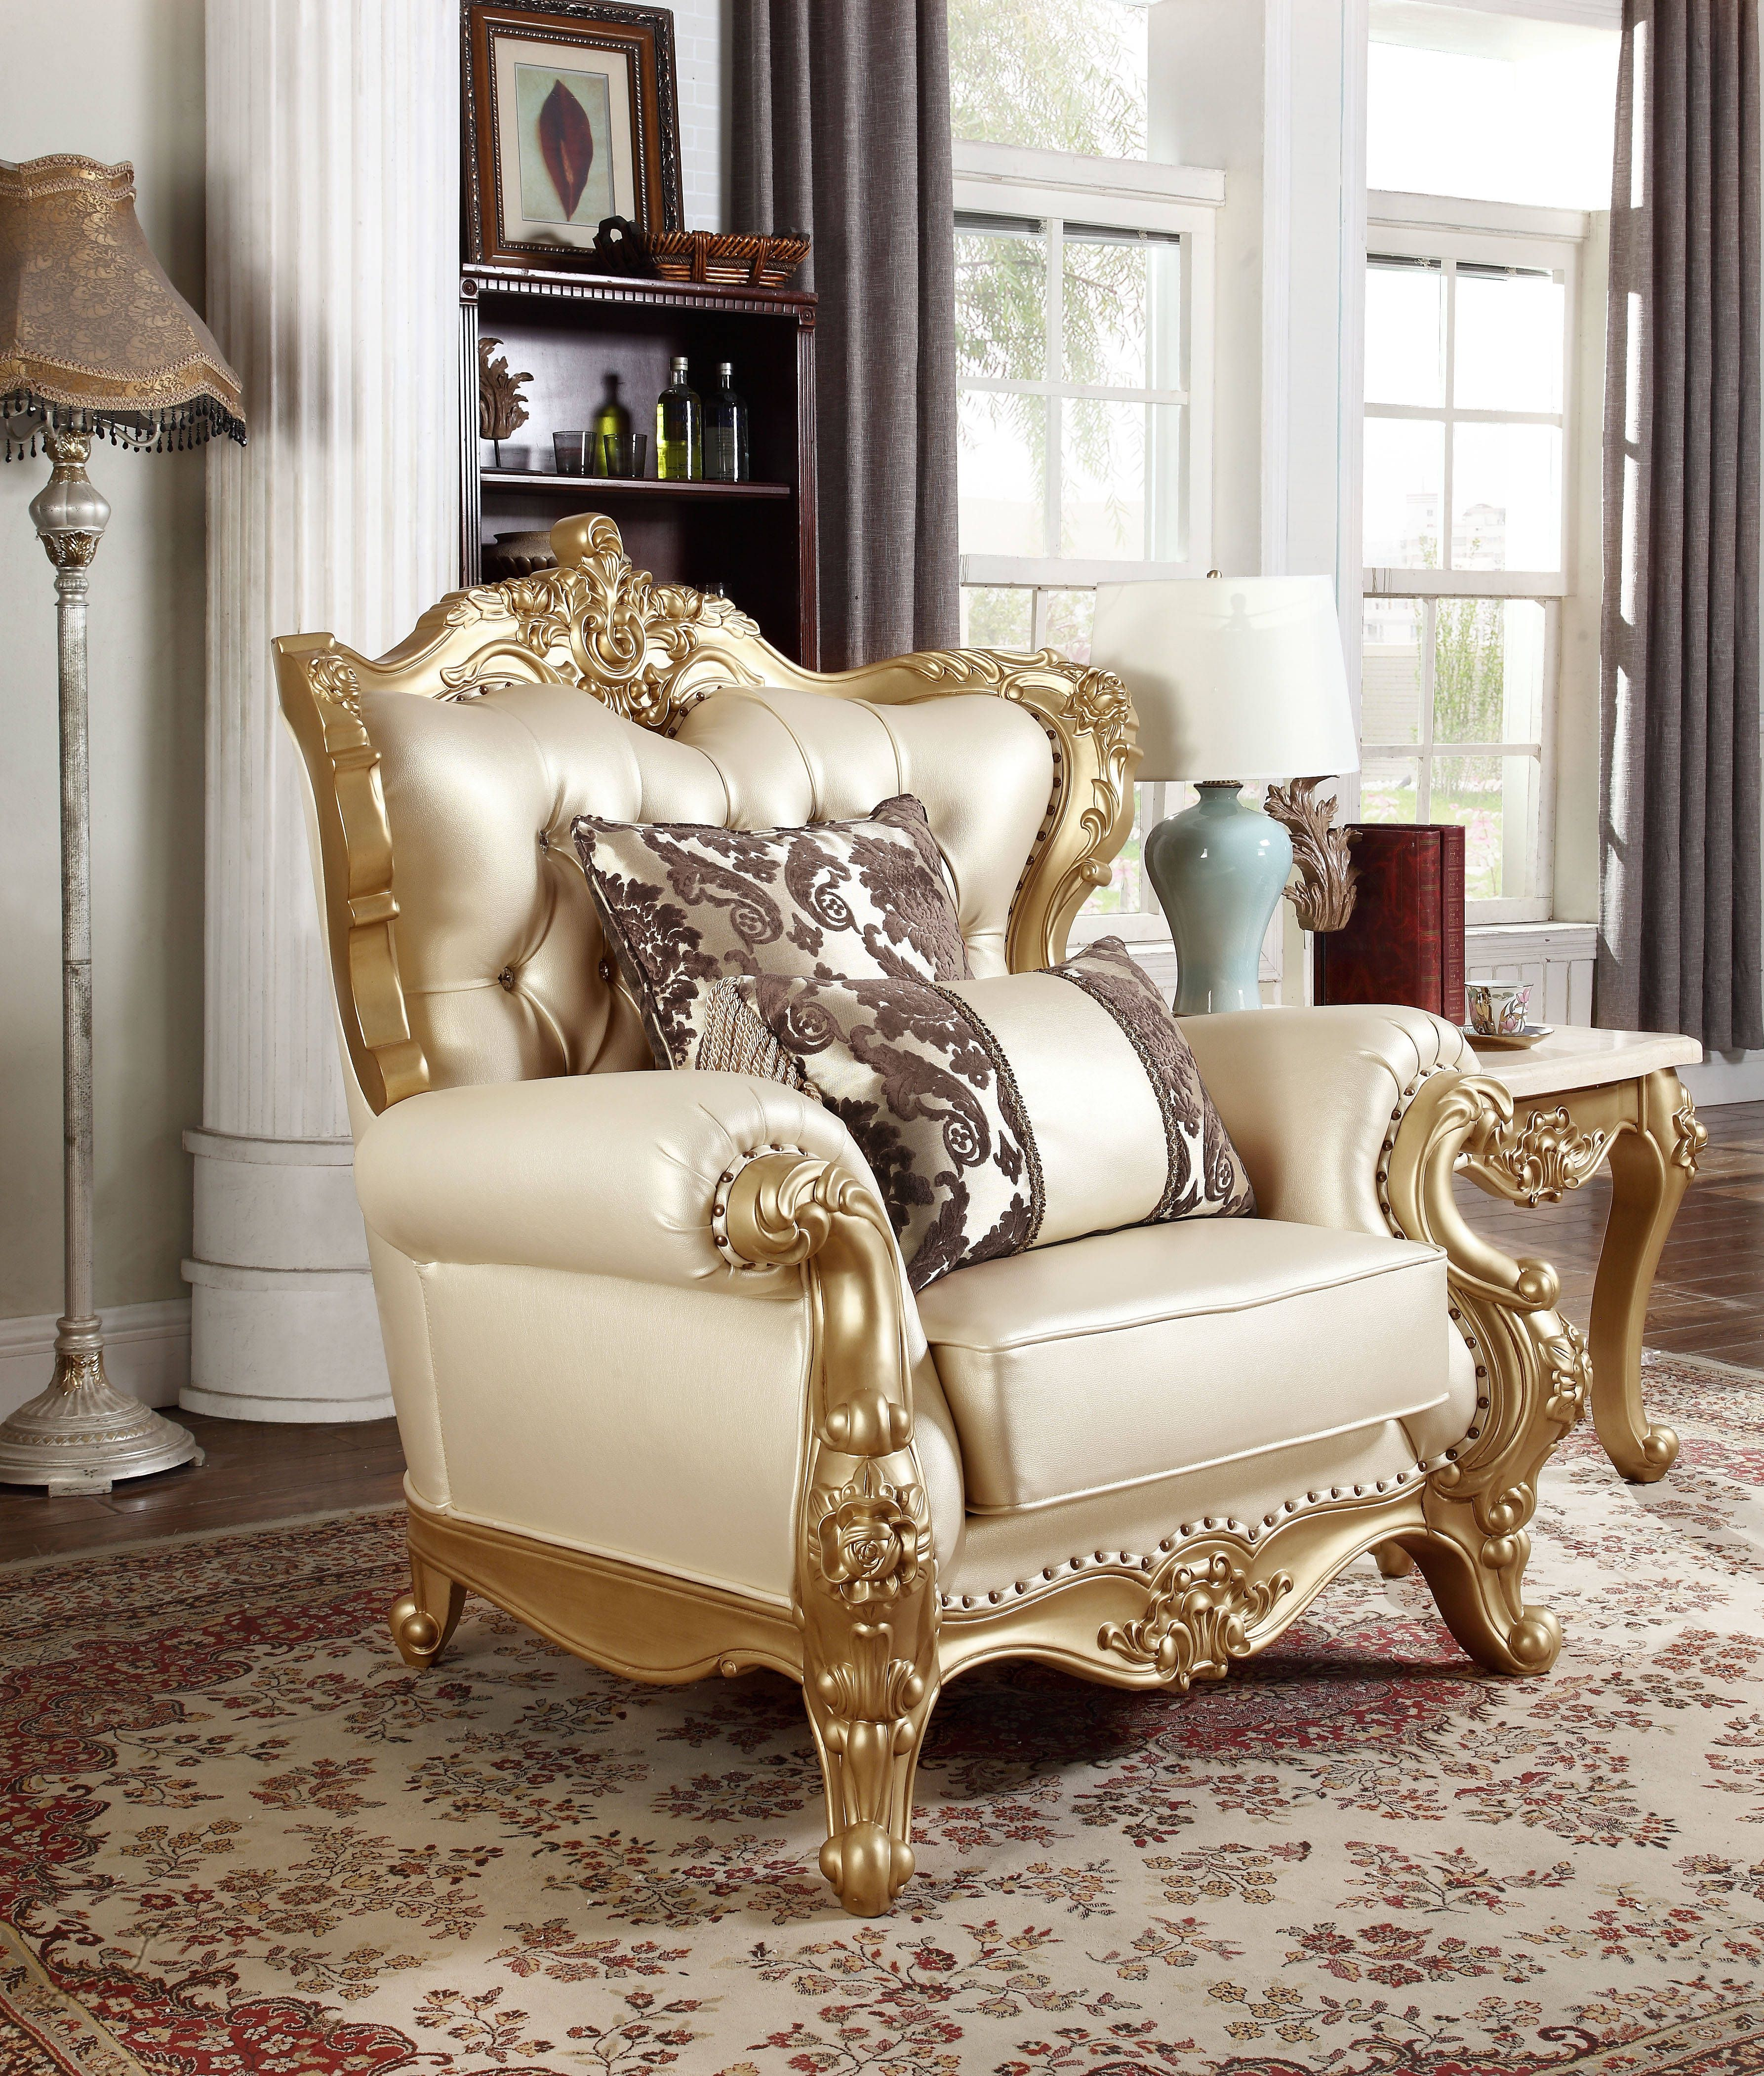 Design Chairs For Living Room Pleasing Bennito Pearl Bonded Leather Solid Wood Hand Carved Designs Chair Inspiration Design